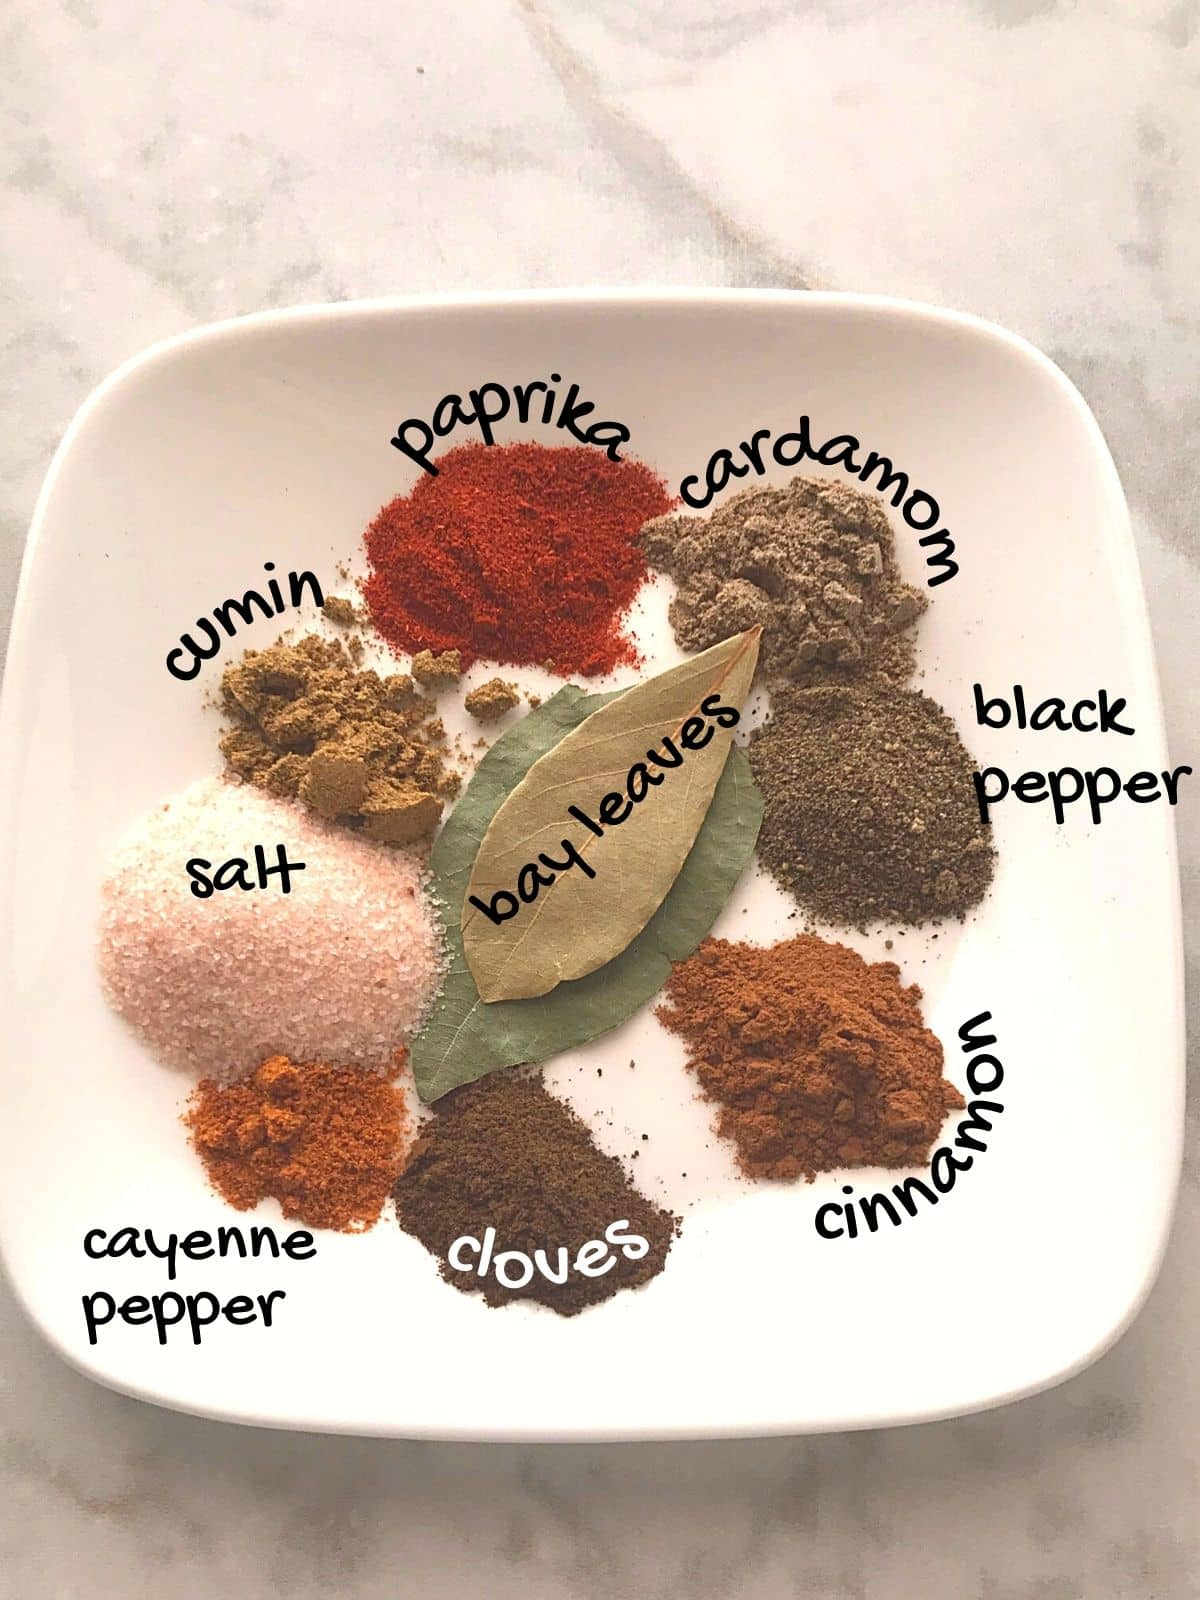 A white plate with shawarma spice blend ingredients placed on a white marble surface.